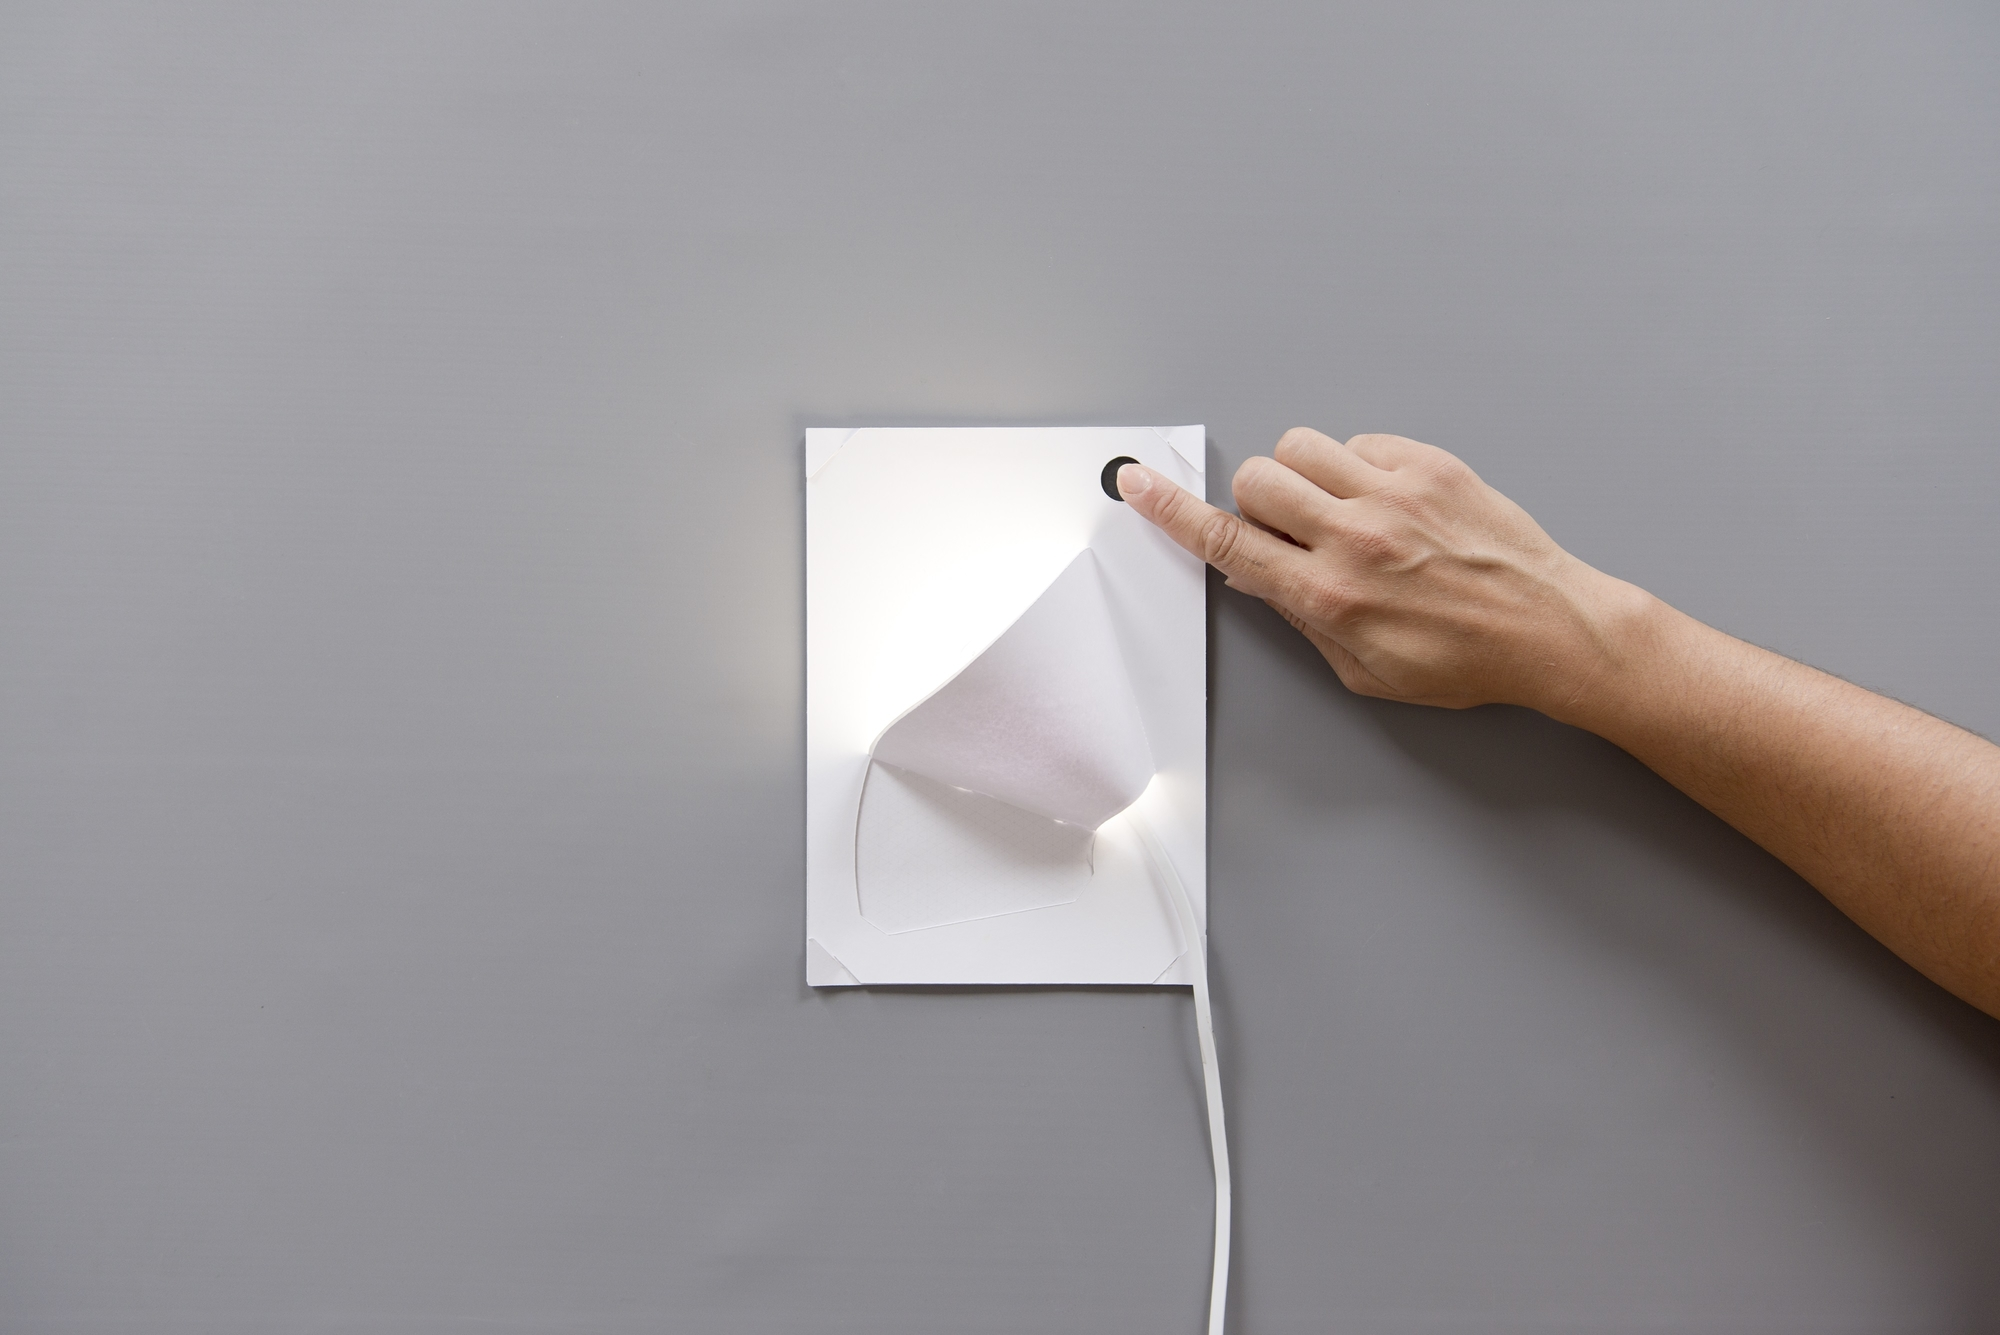 A lamp shade made by Bare Conductive